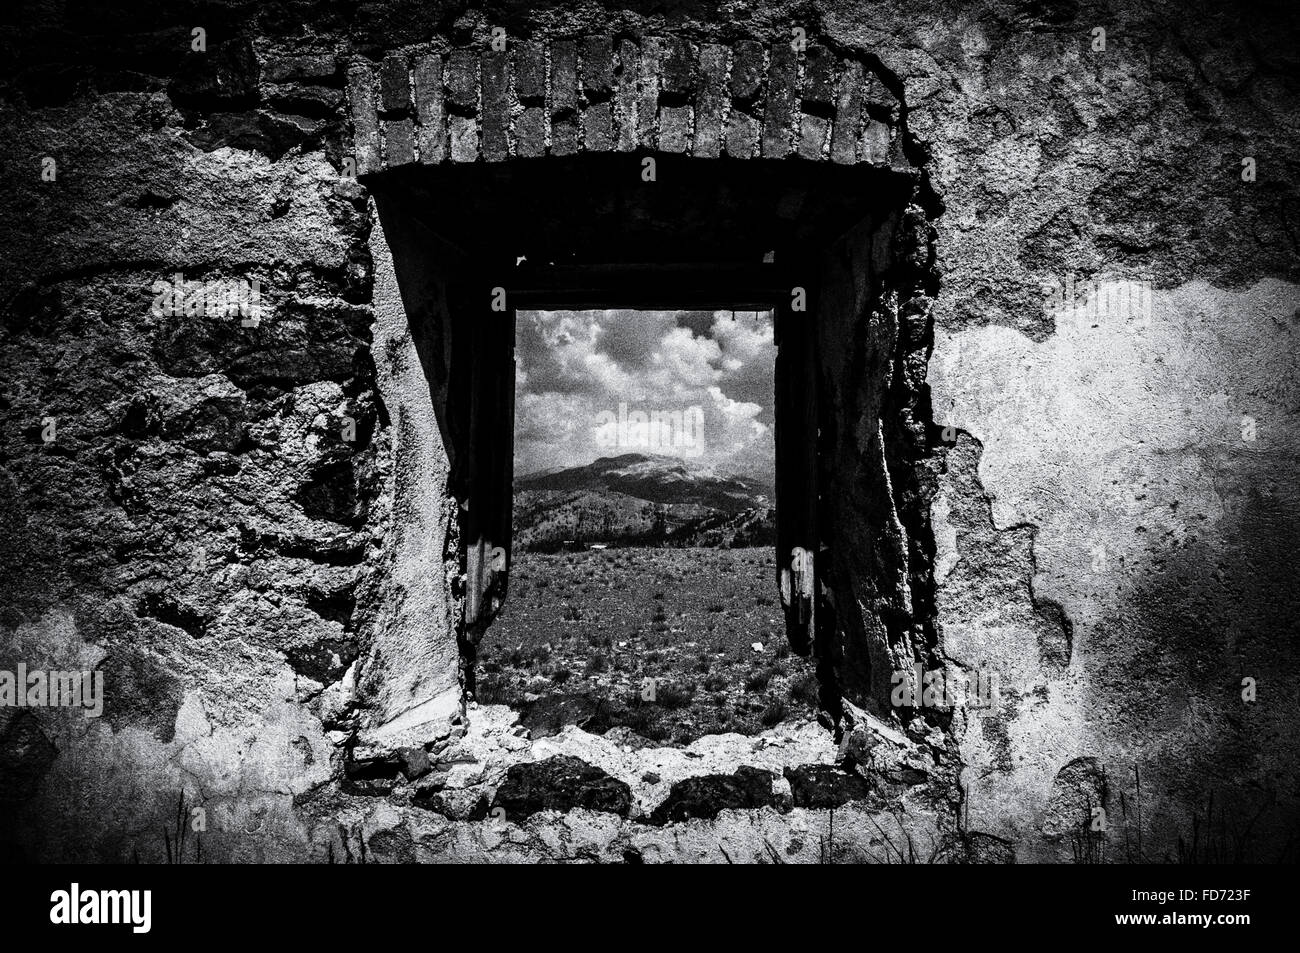 Mountain Seen Through Abandoned Window - Stock Image